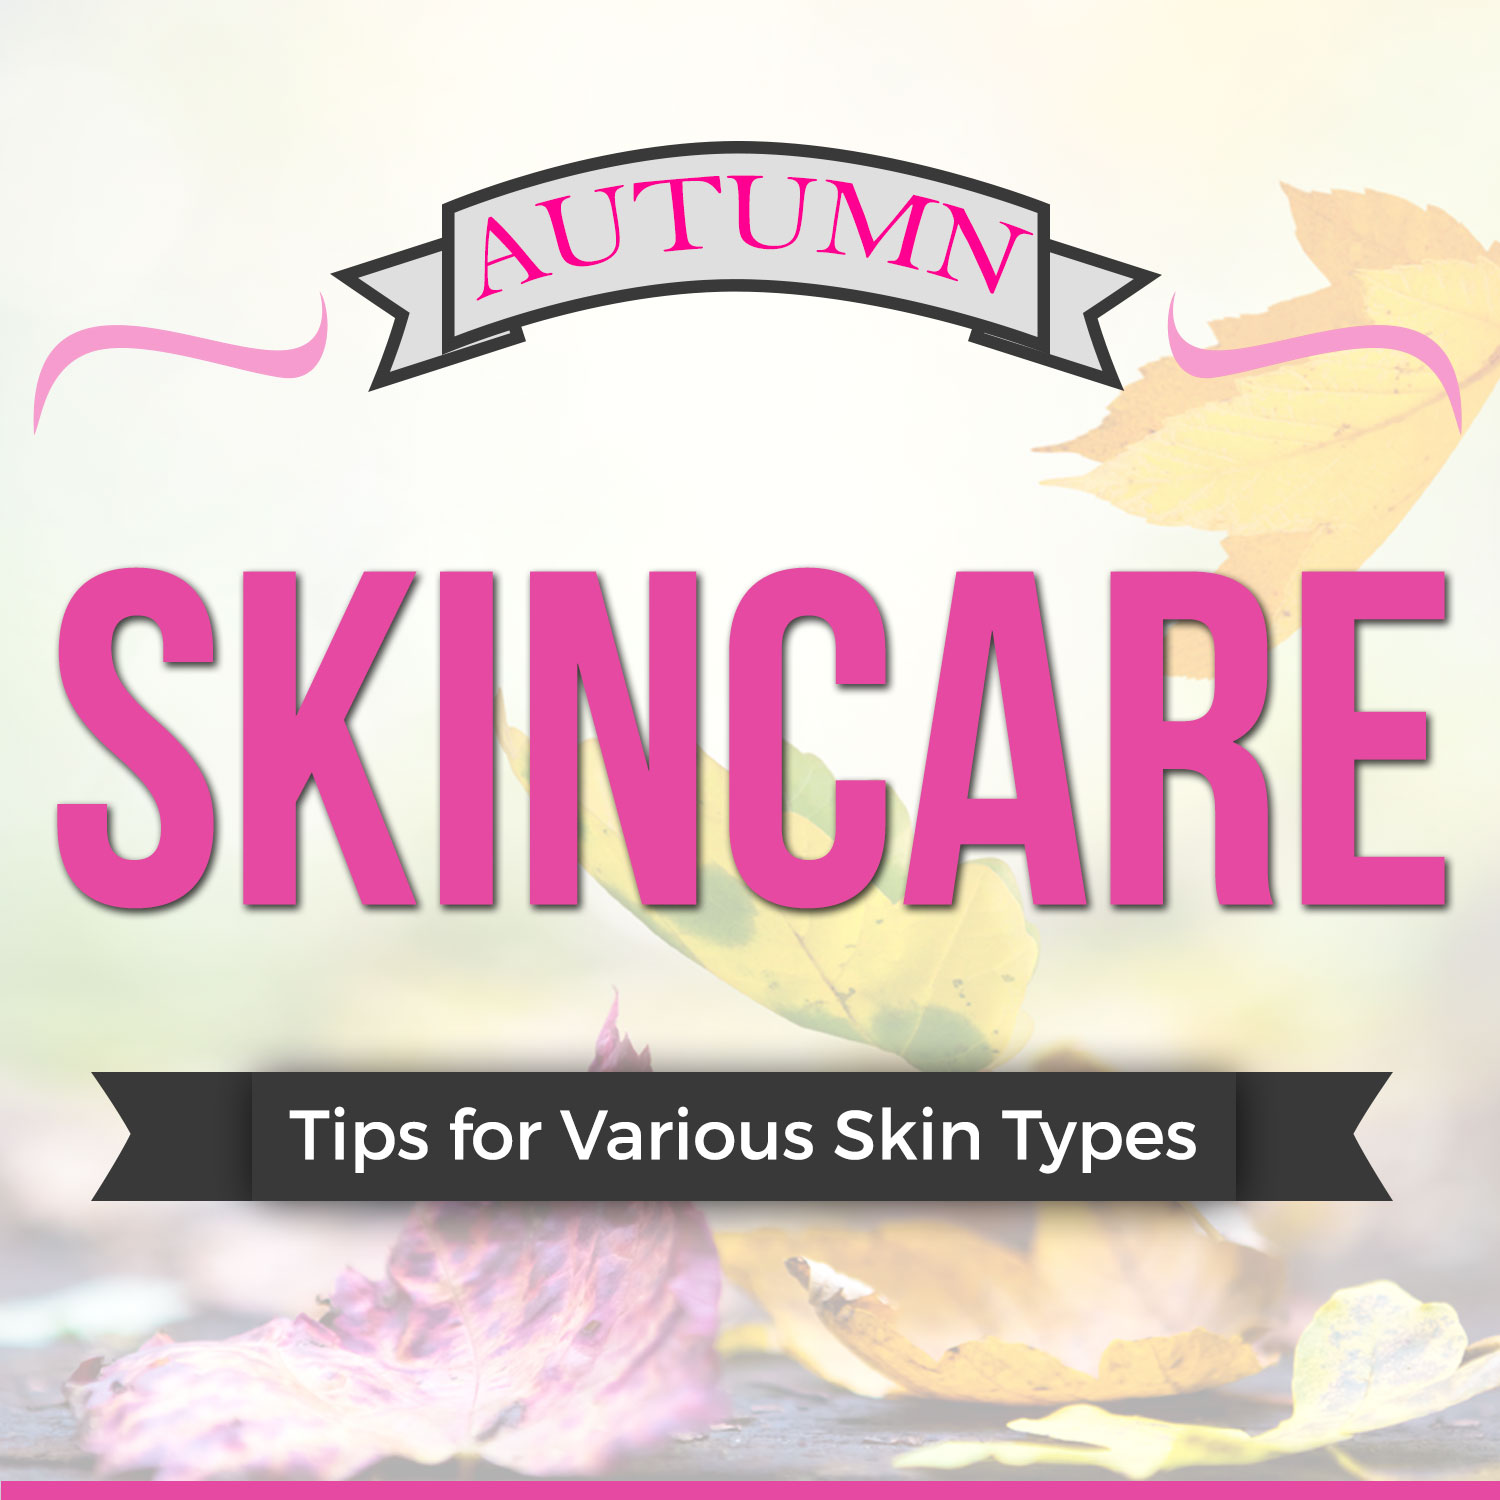 Autumn Skincare Tips for Various Skin Types